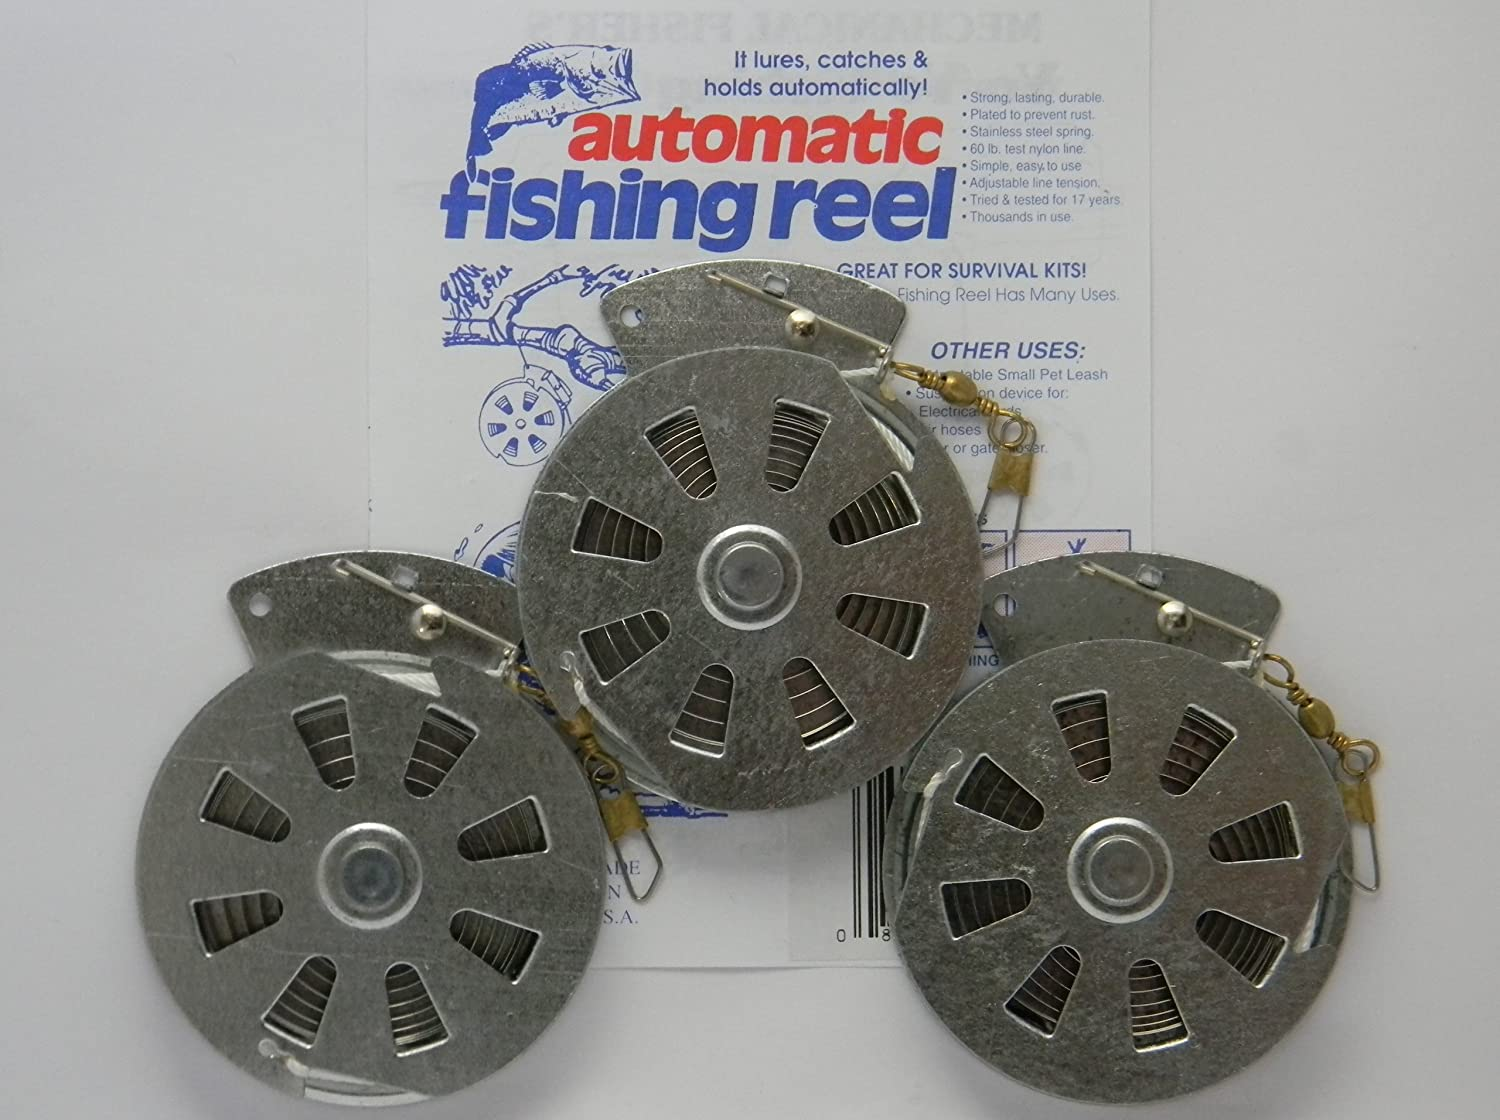 3 Mechanical Fisher's Yo-Yo Automatic Fishing Reels - Package of 3 Reels -  Yoyo Fish Trap -(STANDARD WIRE TRIGGER MODEL - Same Reels sold by Cabela's,